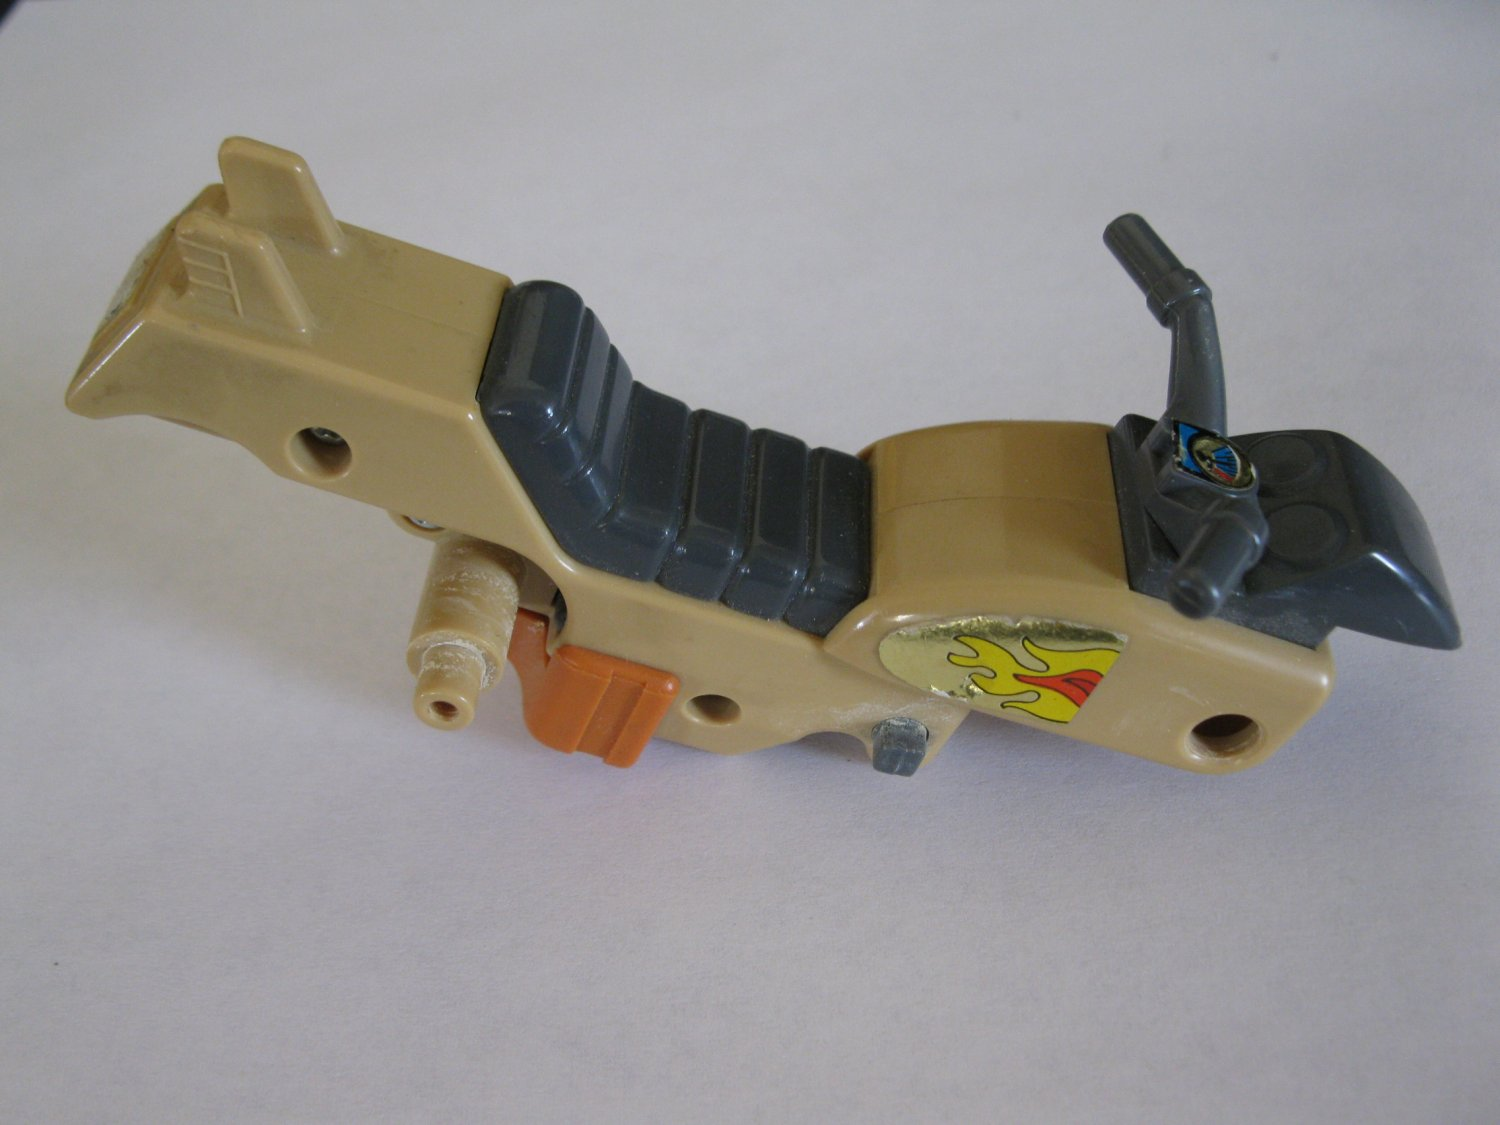 G1 Transformers Action figure part: 1986 Wreck-Gar - Motorcycle Body